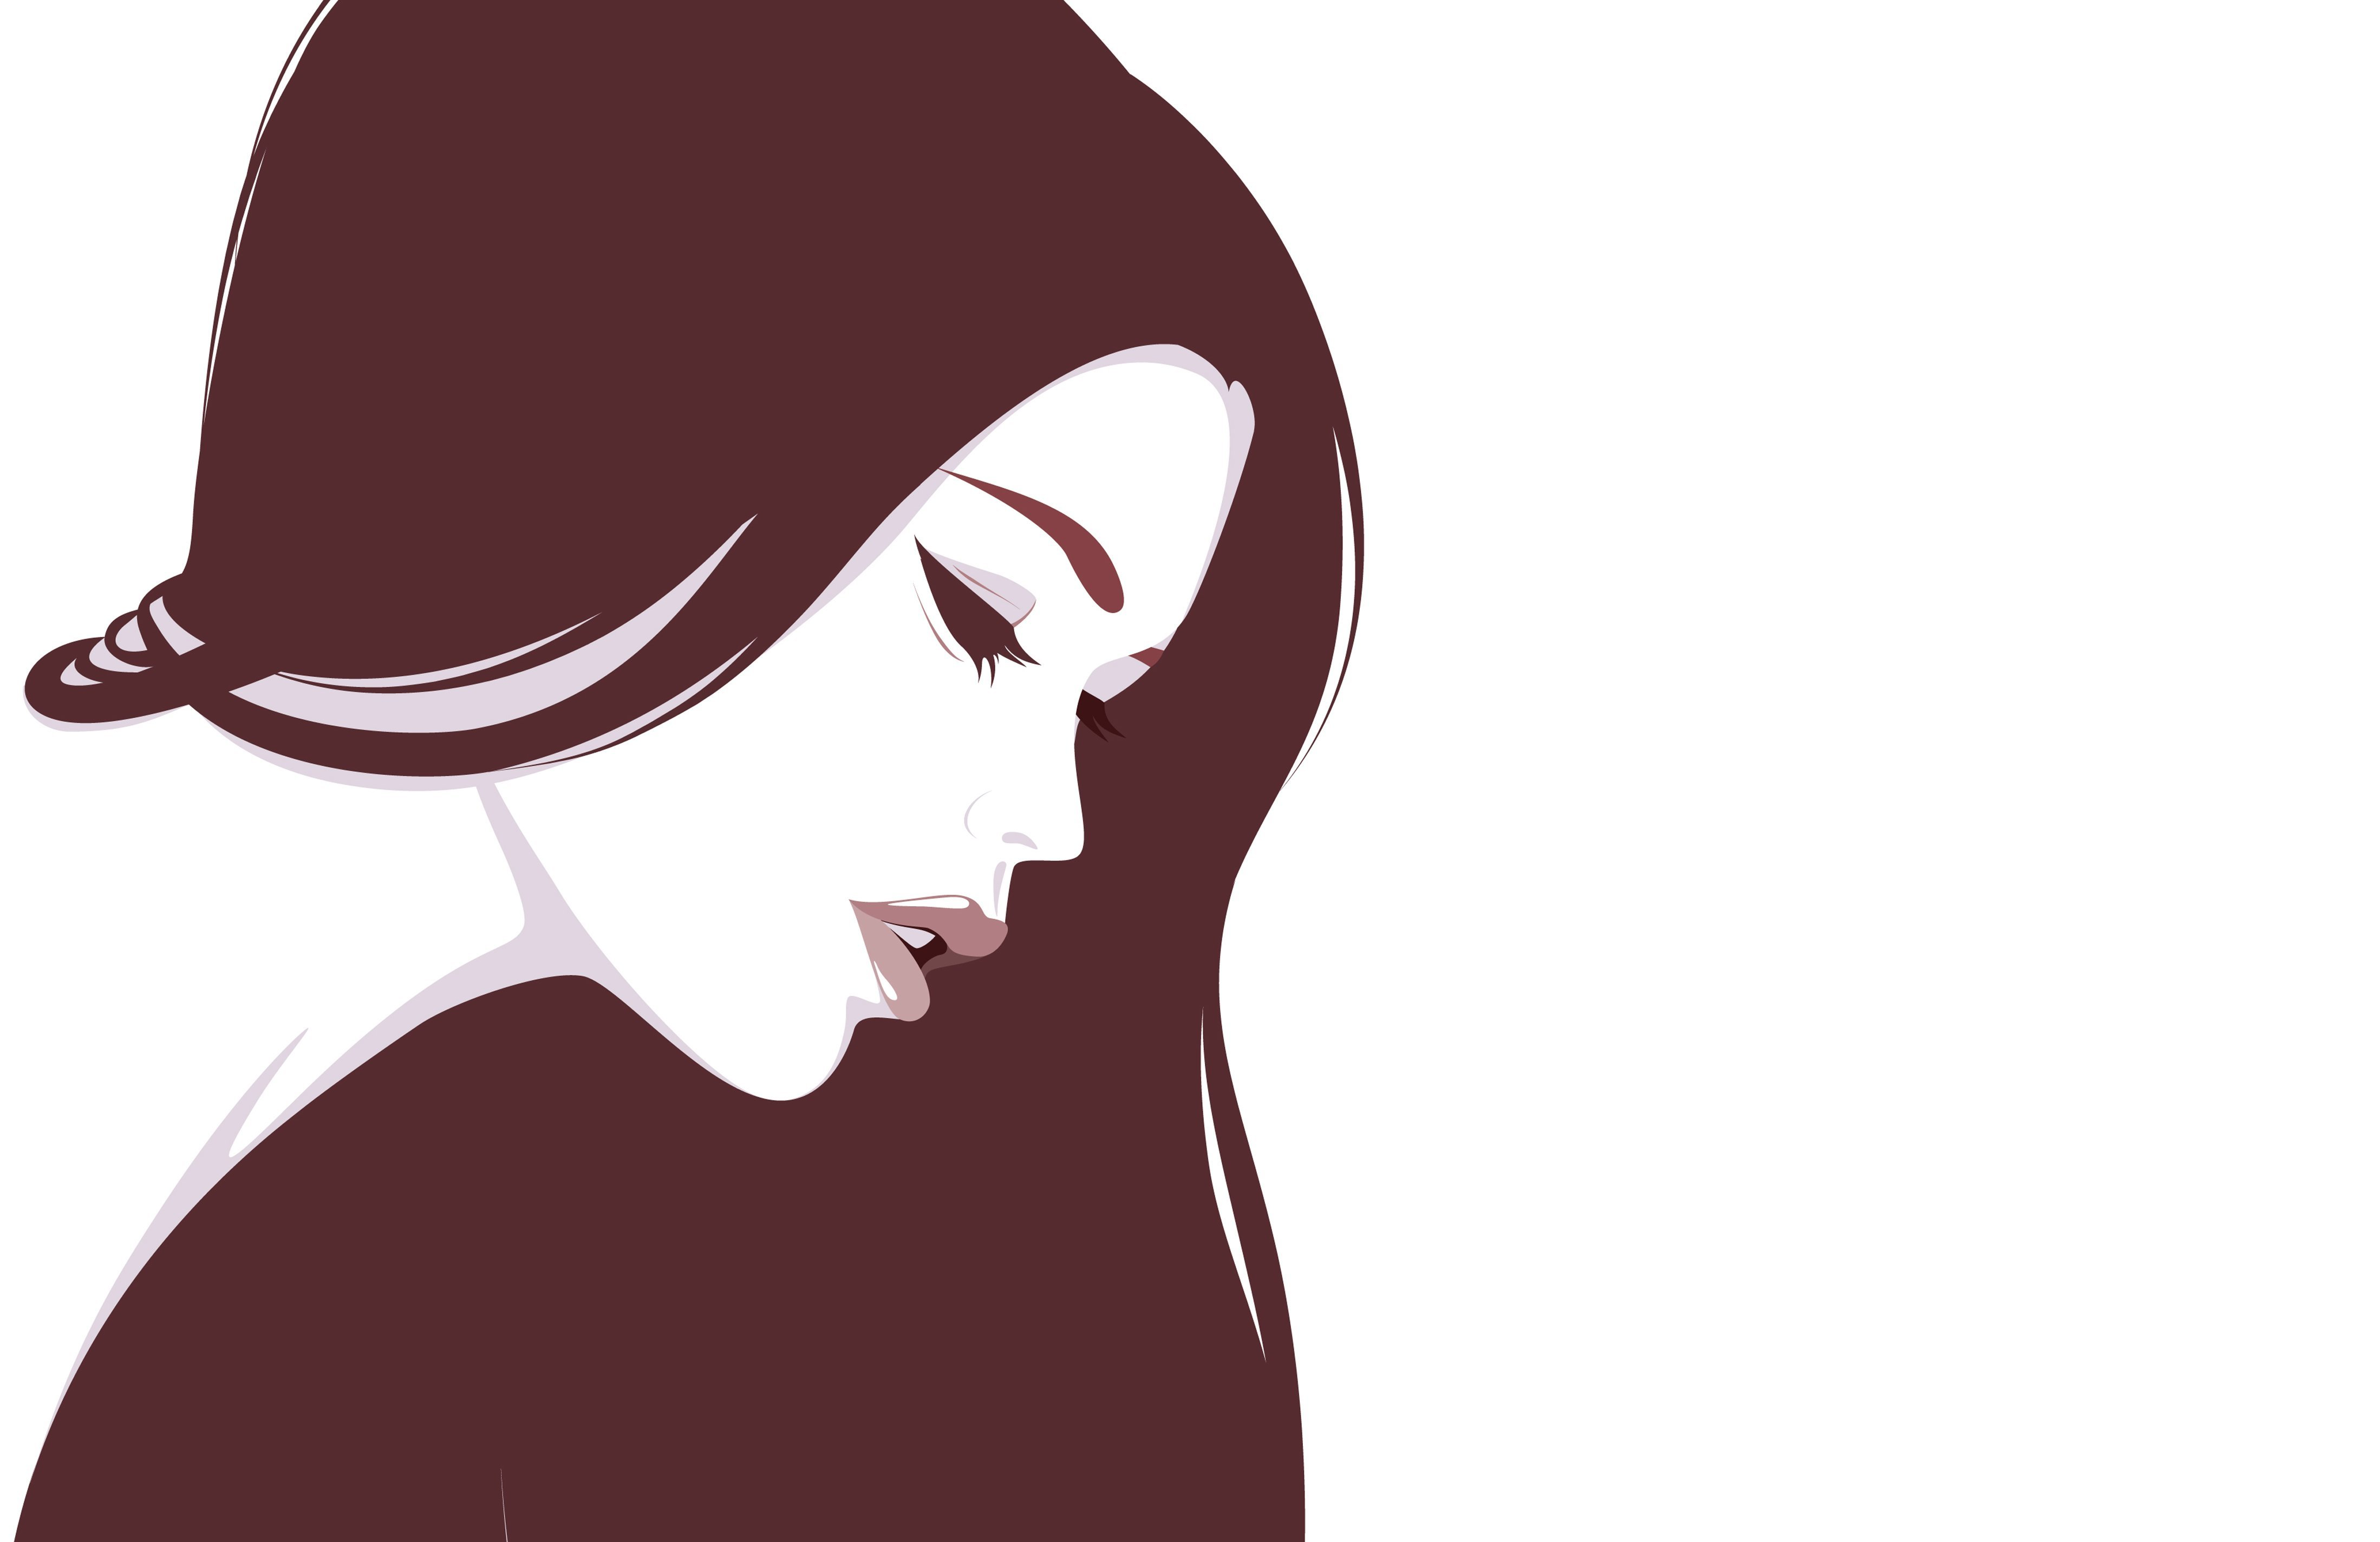 Classic Women illustration 4k Ultra HD Wallpaper and Background ...